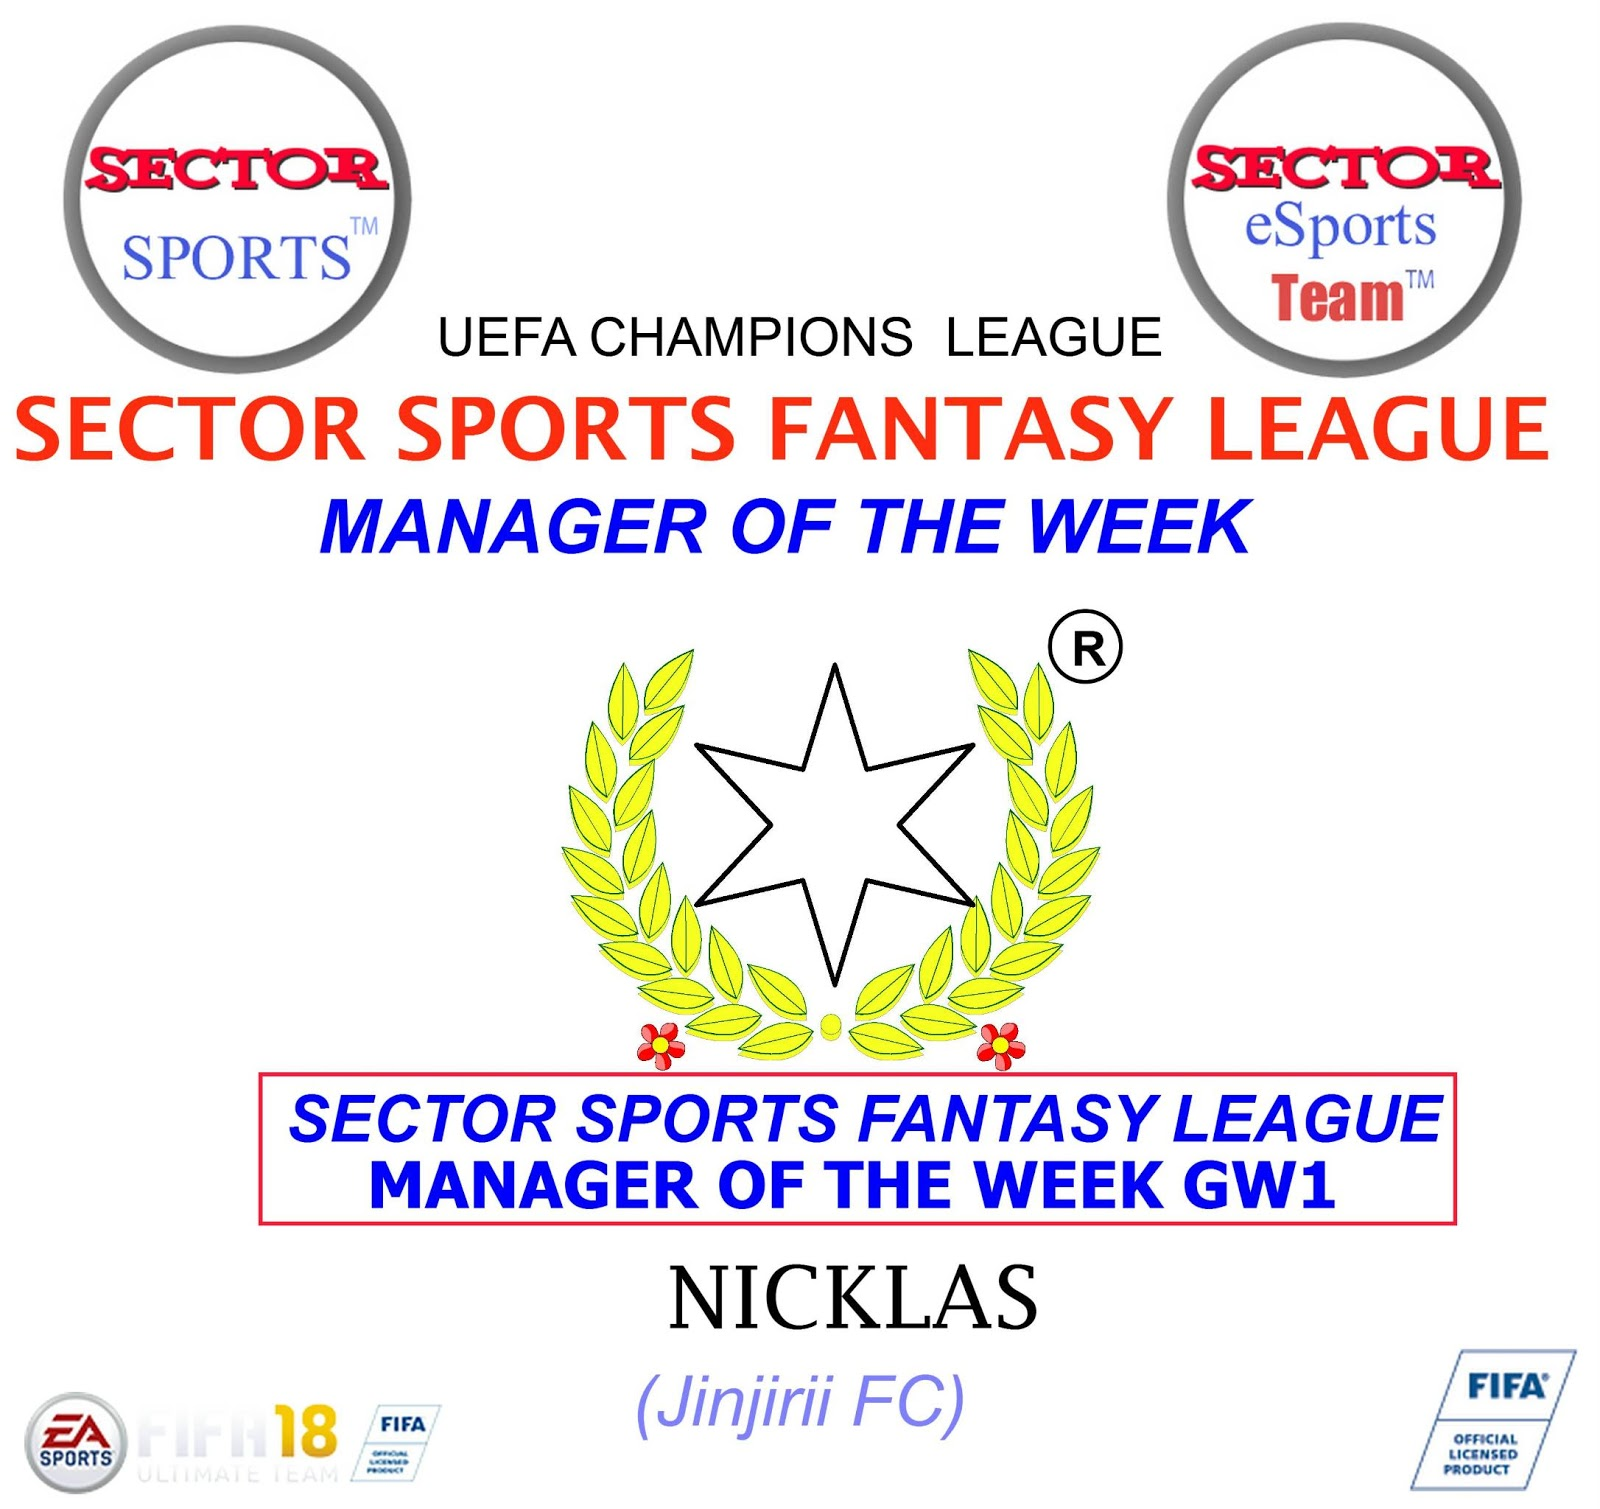 Sector sports champions league fanatsy league table for Championship league table 99 00